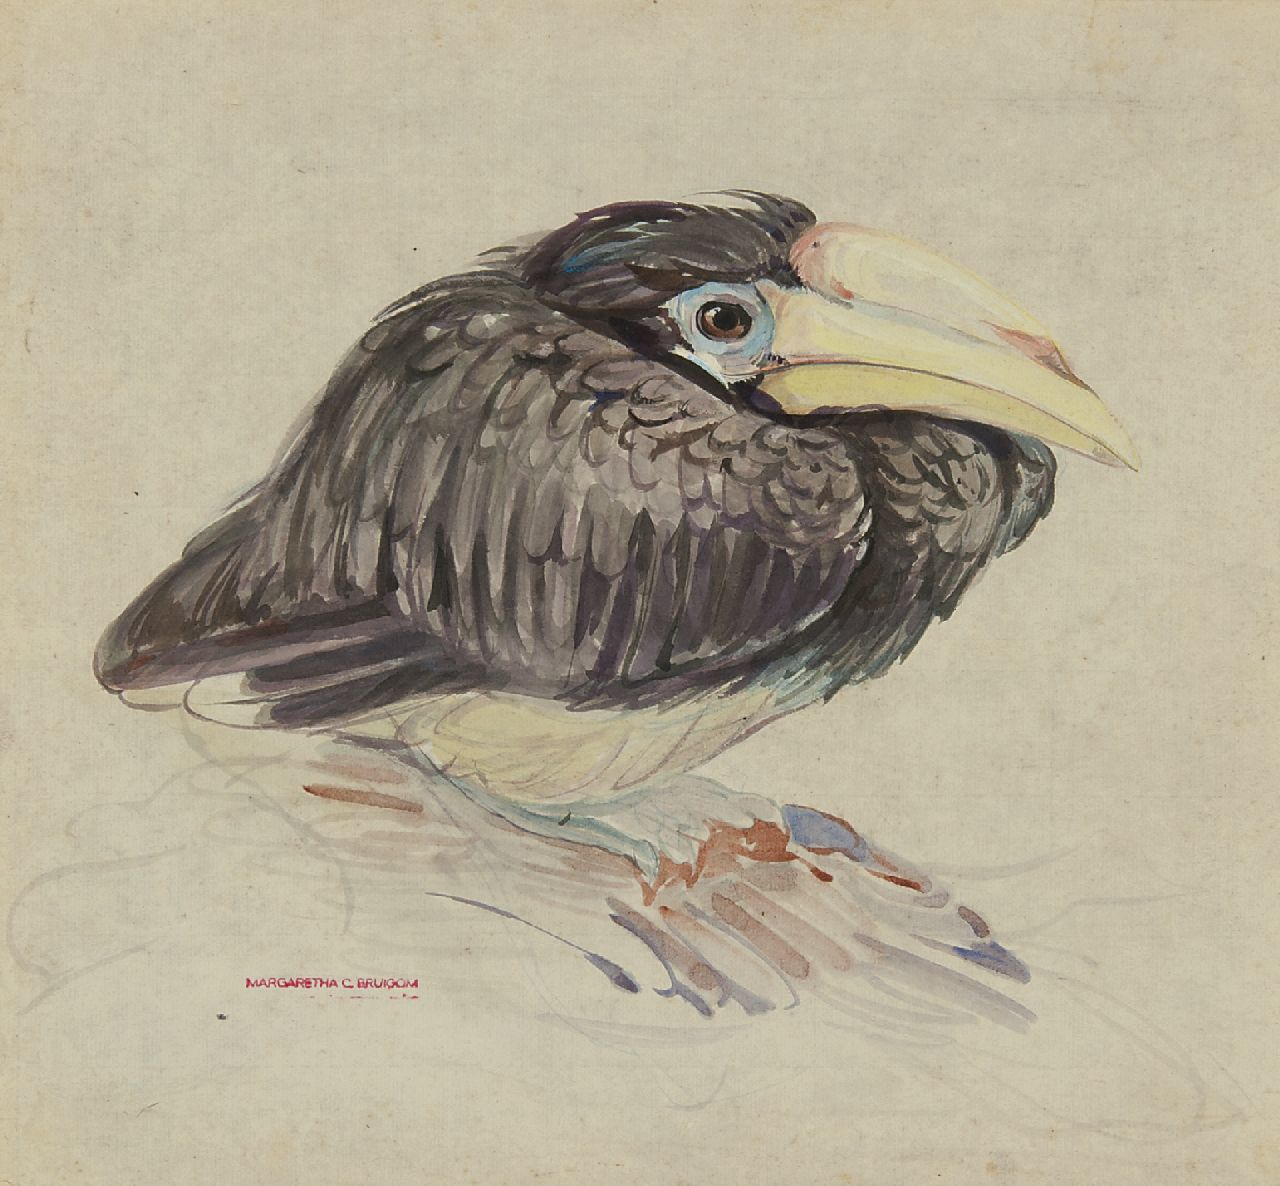 Bruigom M.C.  | Margaretha Cornelia 'Greta' Bruigom | Watercolours and drawings offered for sale | A young hornbill, watercolour on paper 32.4 x 35.5 cm, signed l.l. with the artist's stamp